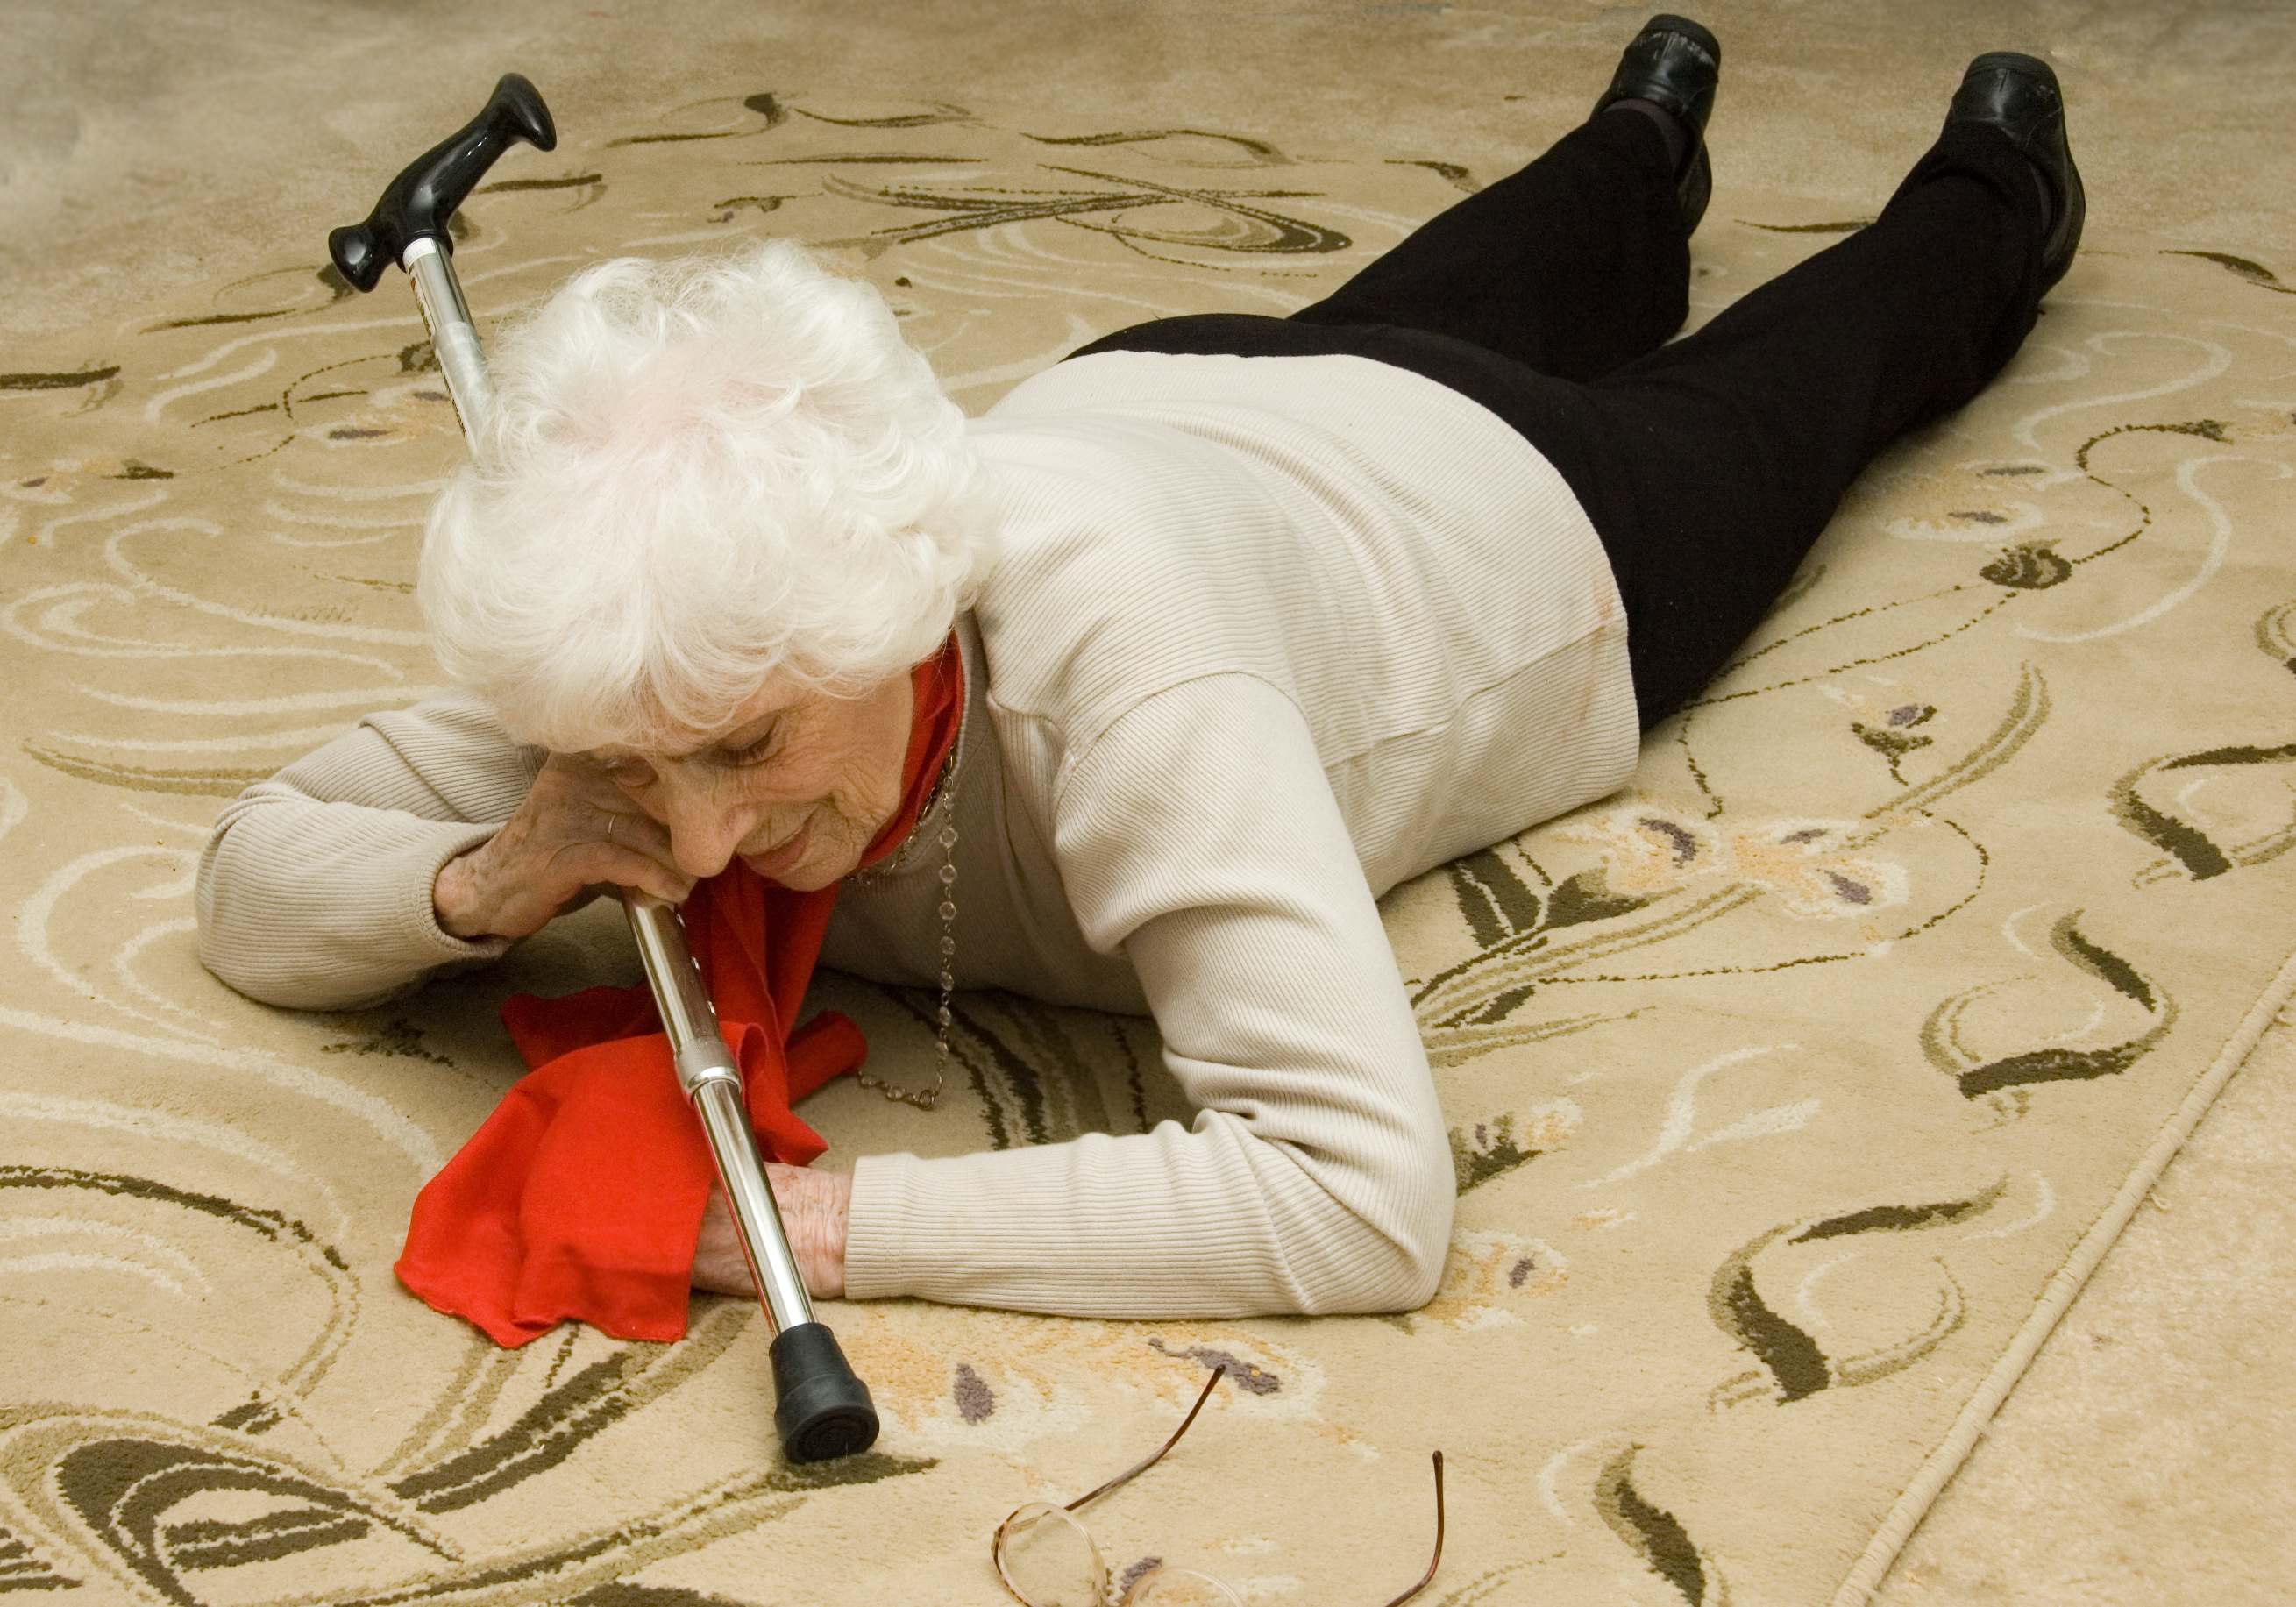 NEWS RELEASE: NIH, PCORI Announce Major Award To Prevent Falls Injuries In Older People